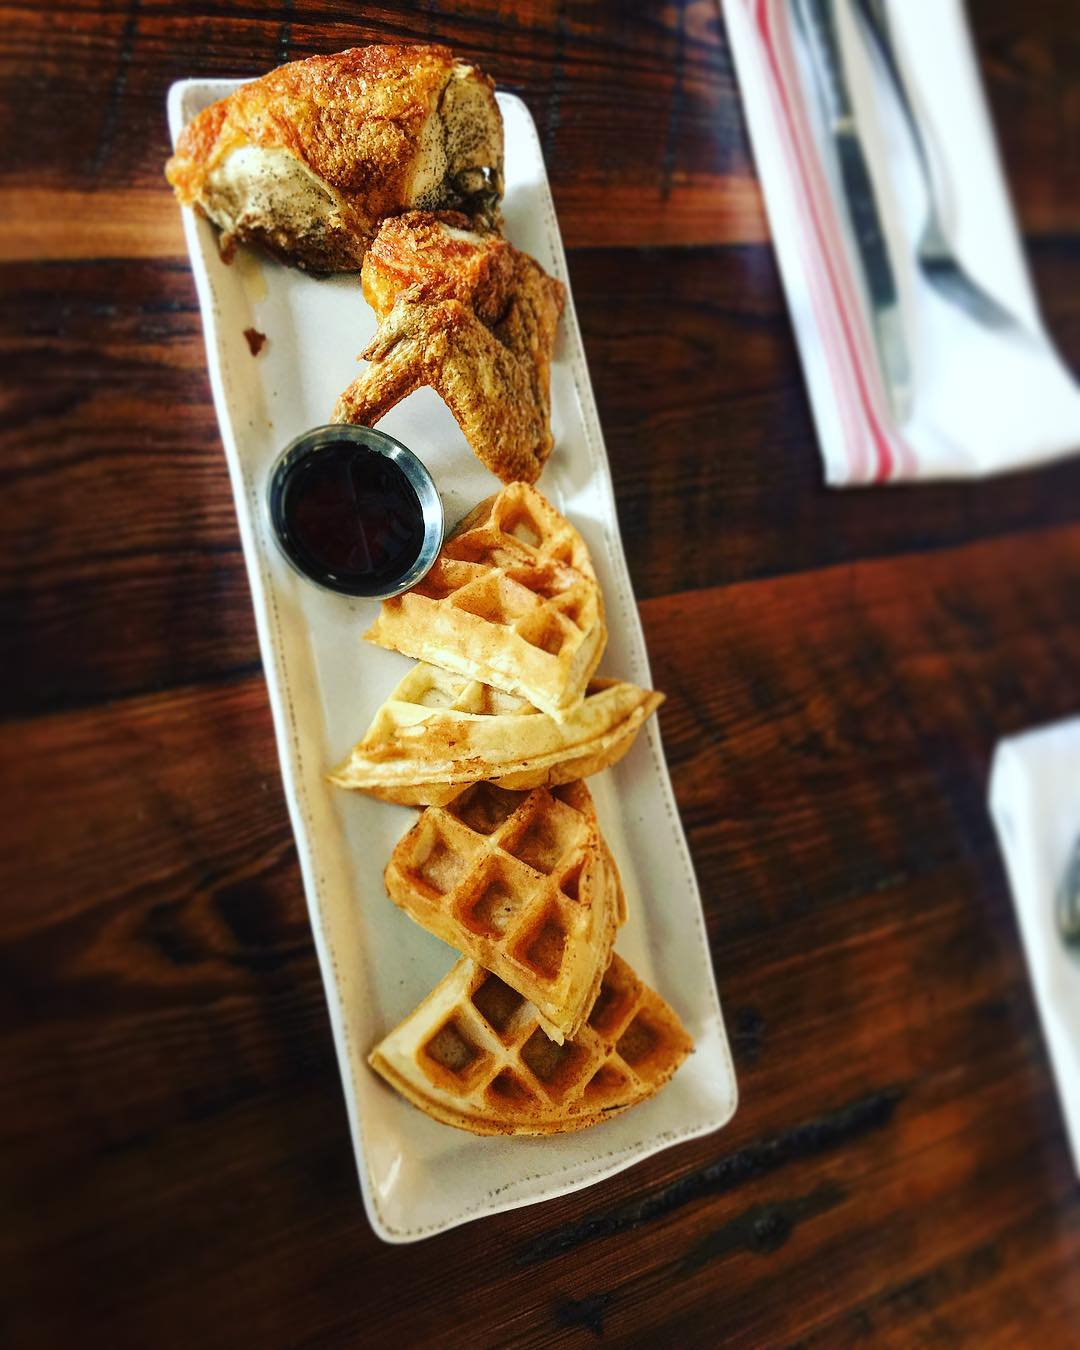 Chicken + Waffles, kids. This week through next week. Get…